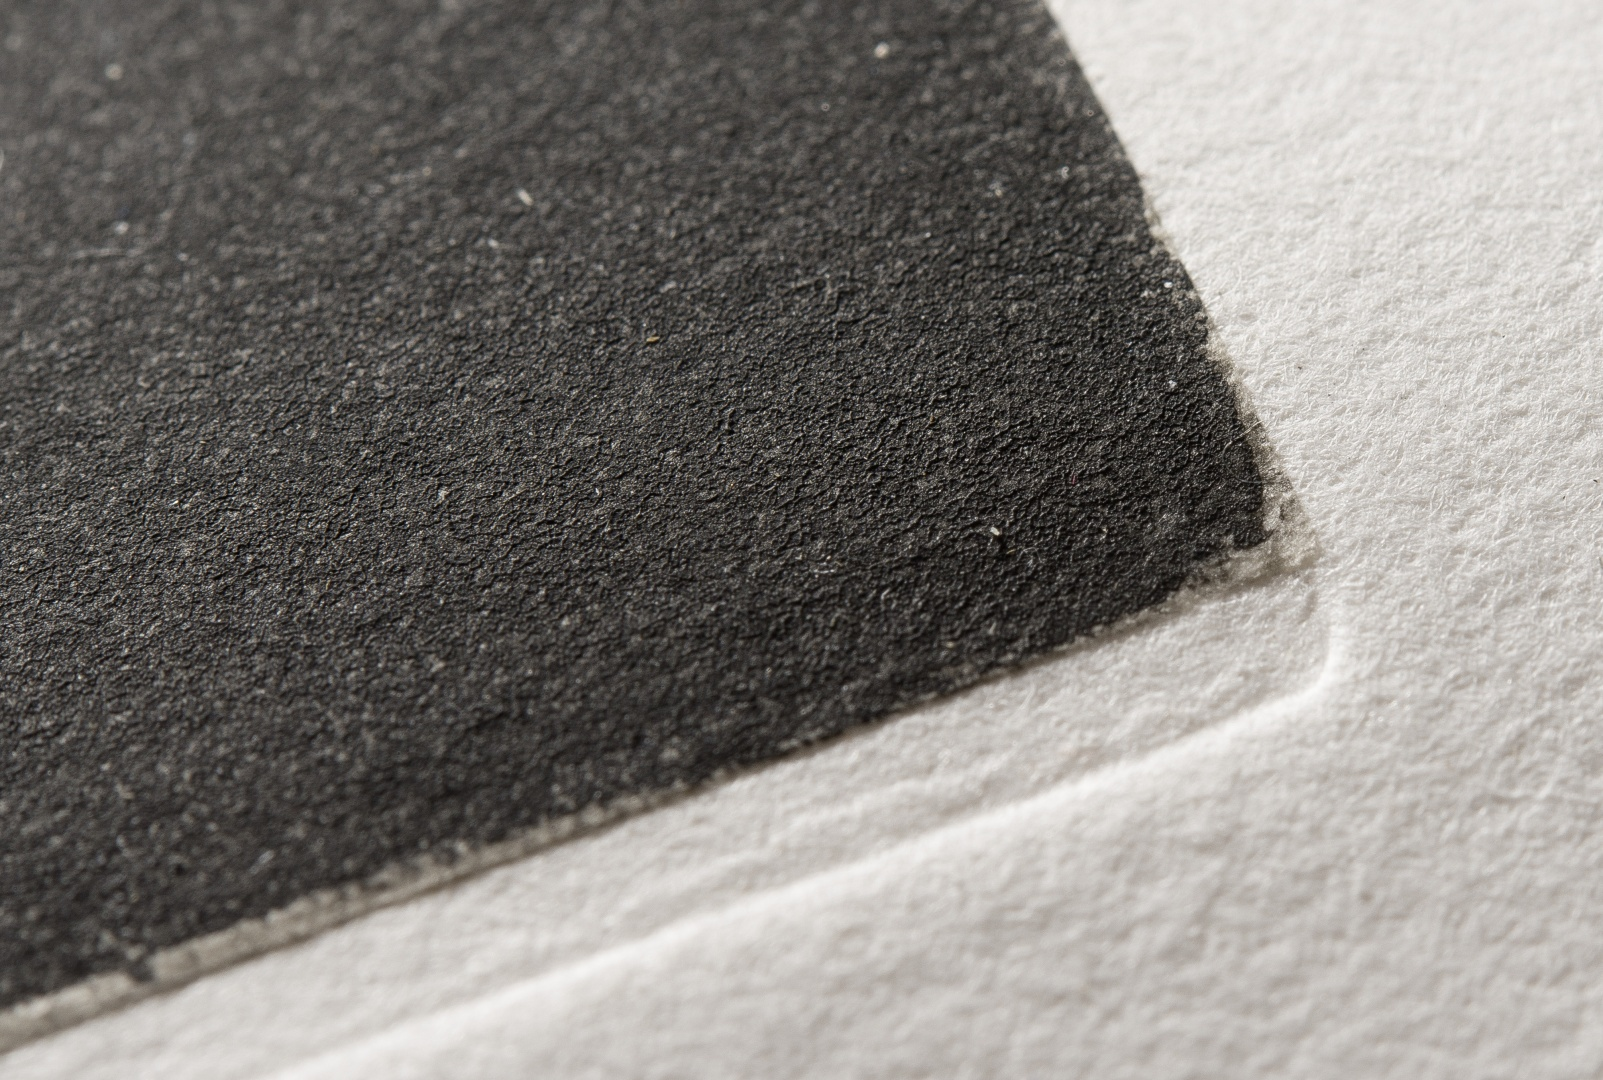 fig 15. Observation showed that double-layered paper had been used – the not-glued rag-paper has the Chine-collé on gampi paper on top.